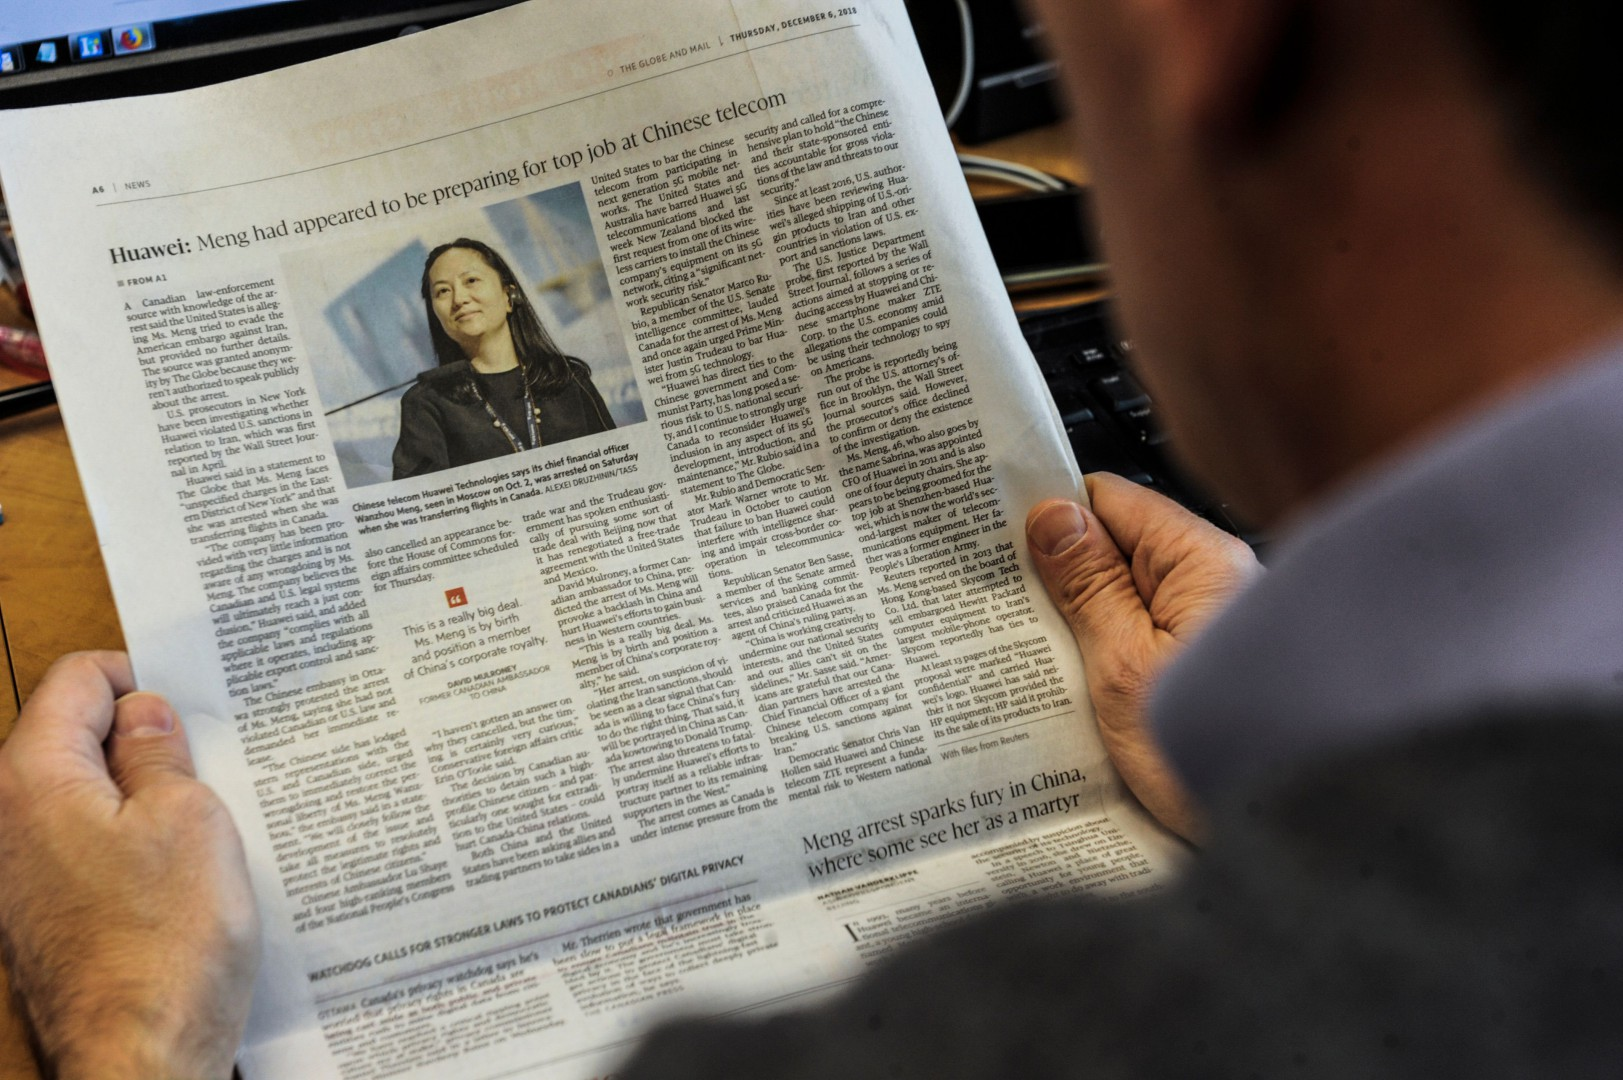 An illustration shows a journalist reading a news page about tech giant Huawei in The Globe and Mail in Montreal, Canada, December 6, 2018. - The arrest of a top executive of Huawei at the request of US authorities signals a toughening stand in Washington on dealing with Chinese tech firms amid longstanding concerns over cyberespionage. Meng Wanzhou (pictured on the news page), Huawei's chief financial officer, was detained this week in Canada and faces an extradition request from US authorities over an investigation into suspected Iran sanctions violations by the Chinese technology giant. (Photo by Clement SABOURIN / AFP) / RESTRICTED TO EDITORIAL USE